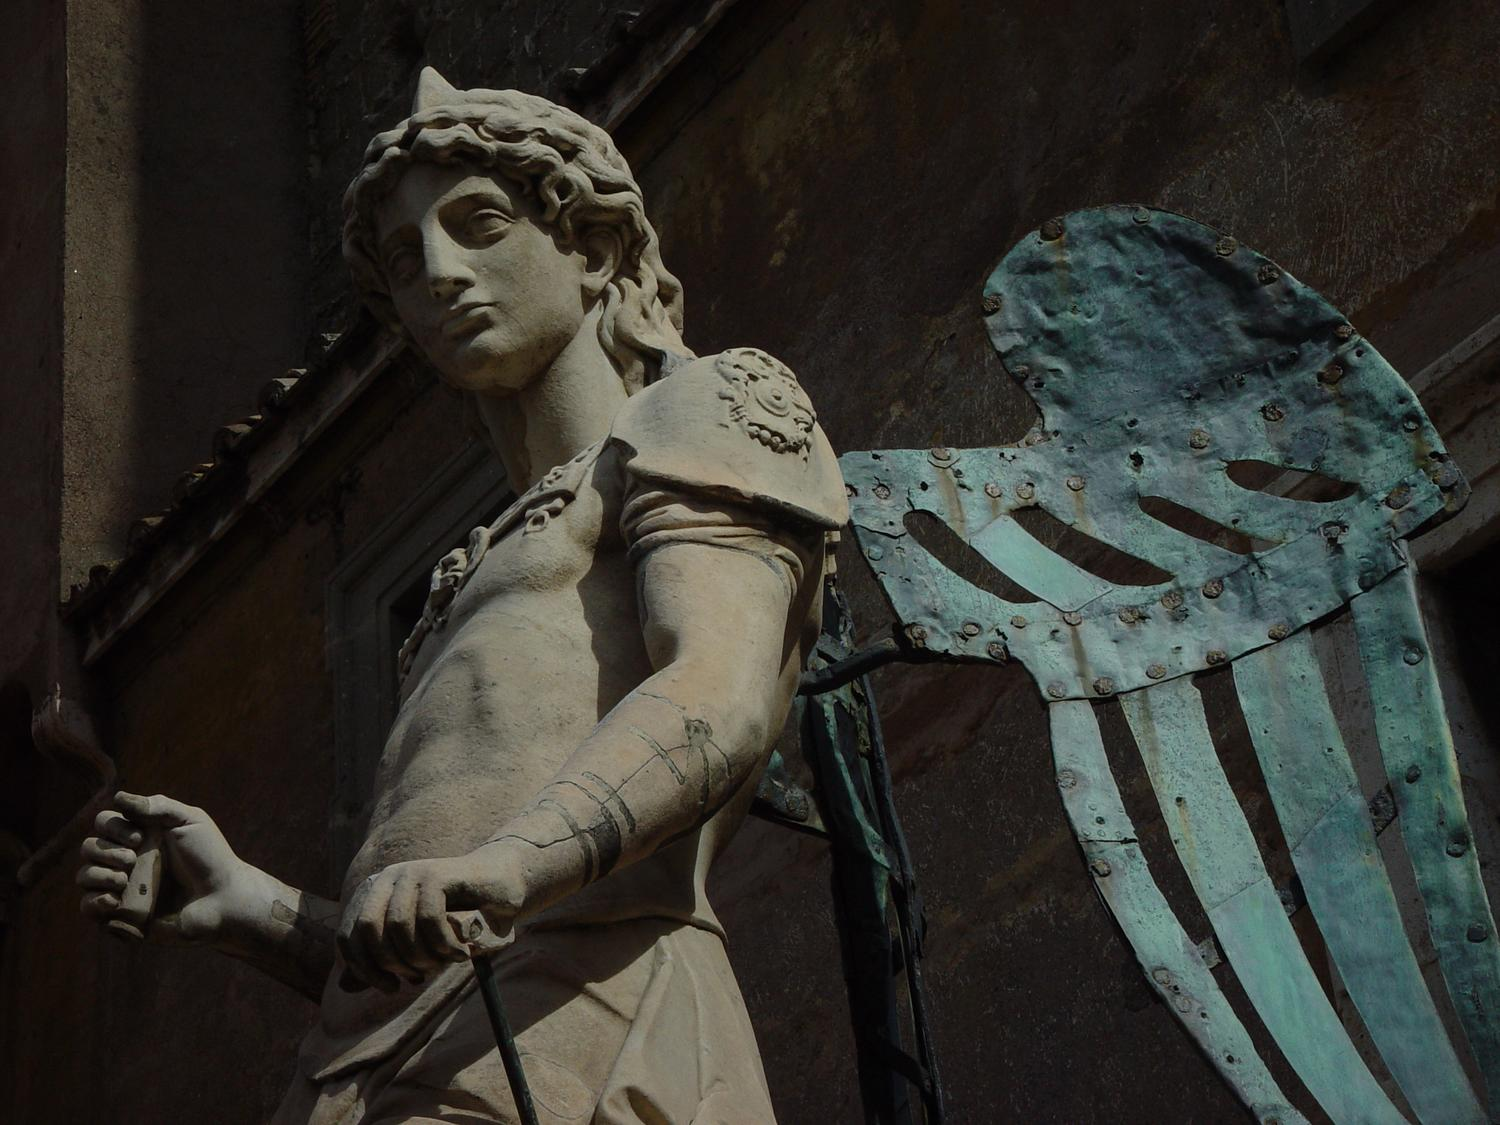 Angel at Castel Sant'Angelo #2 - - Photography becomes art - Making an angel - Angel at Castel Sant'Angelo - Rome, Italy - The archangel Michael decided to sheath his sword and stop killing Romans with plague--this statue by Raffaello da Montelupo (1504–1566) commemorates the end of an epidemic in 590. - Sony DSC-F707 - - art  - photography - by Tony Karp